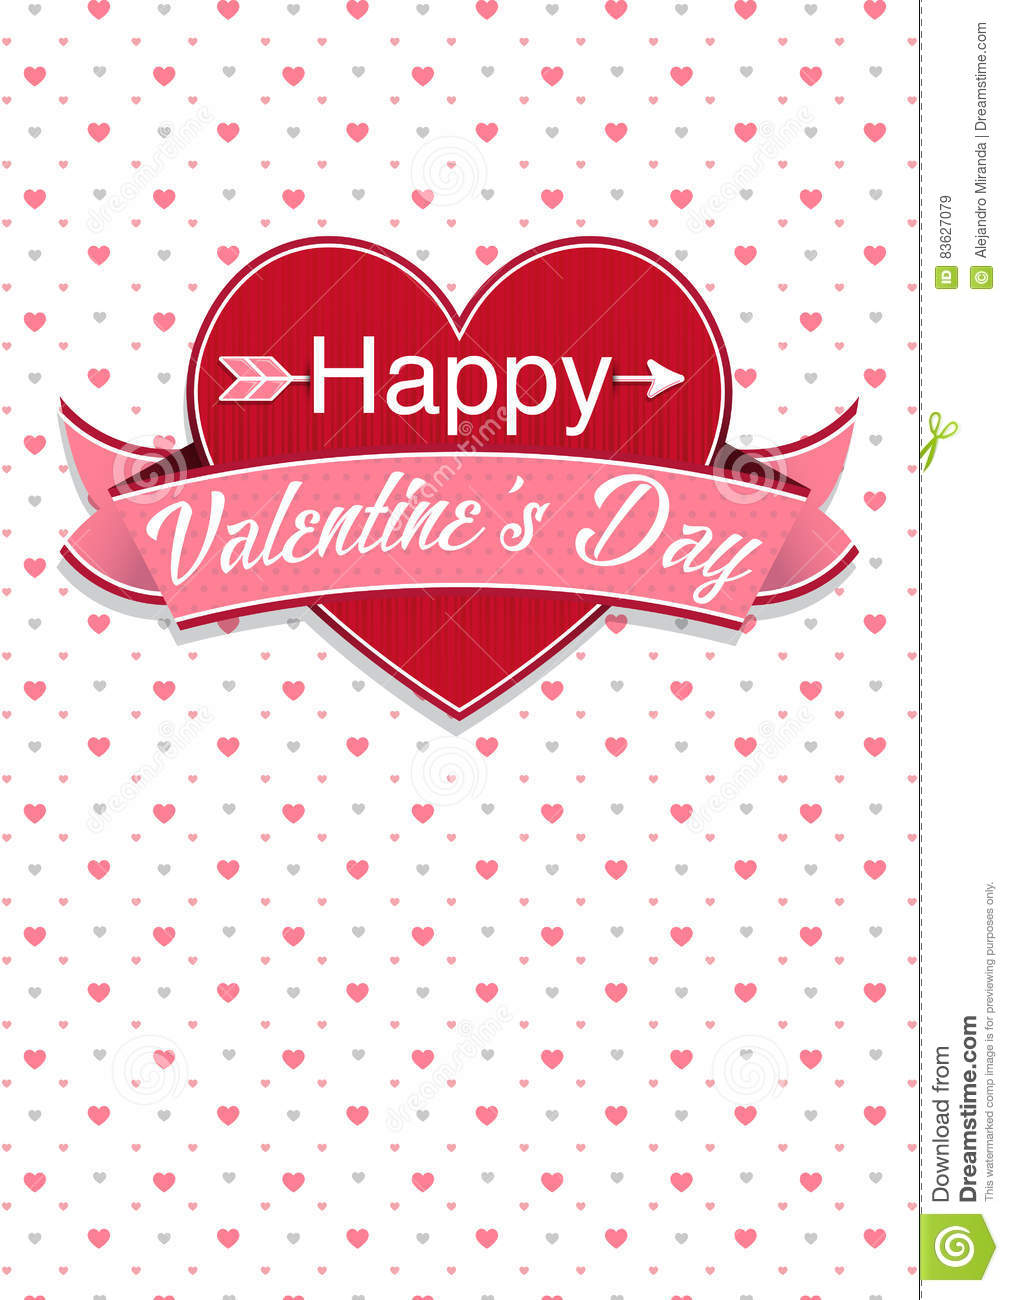 Card Cover With Message: Happy Valentines Day On A Red Heart ...